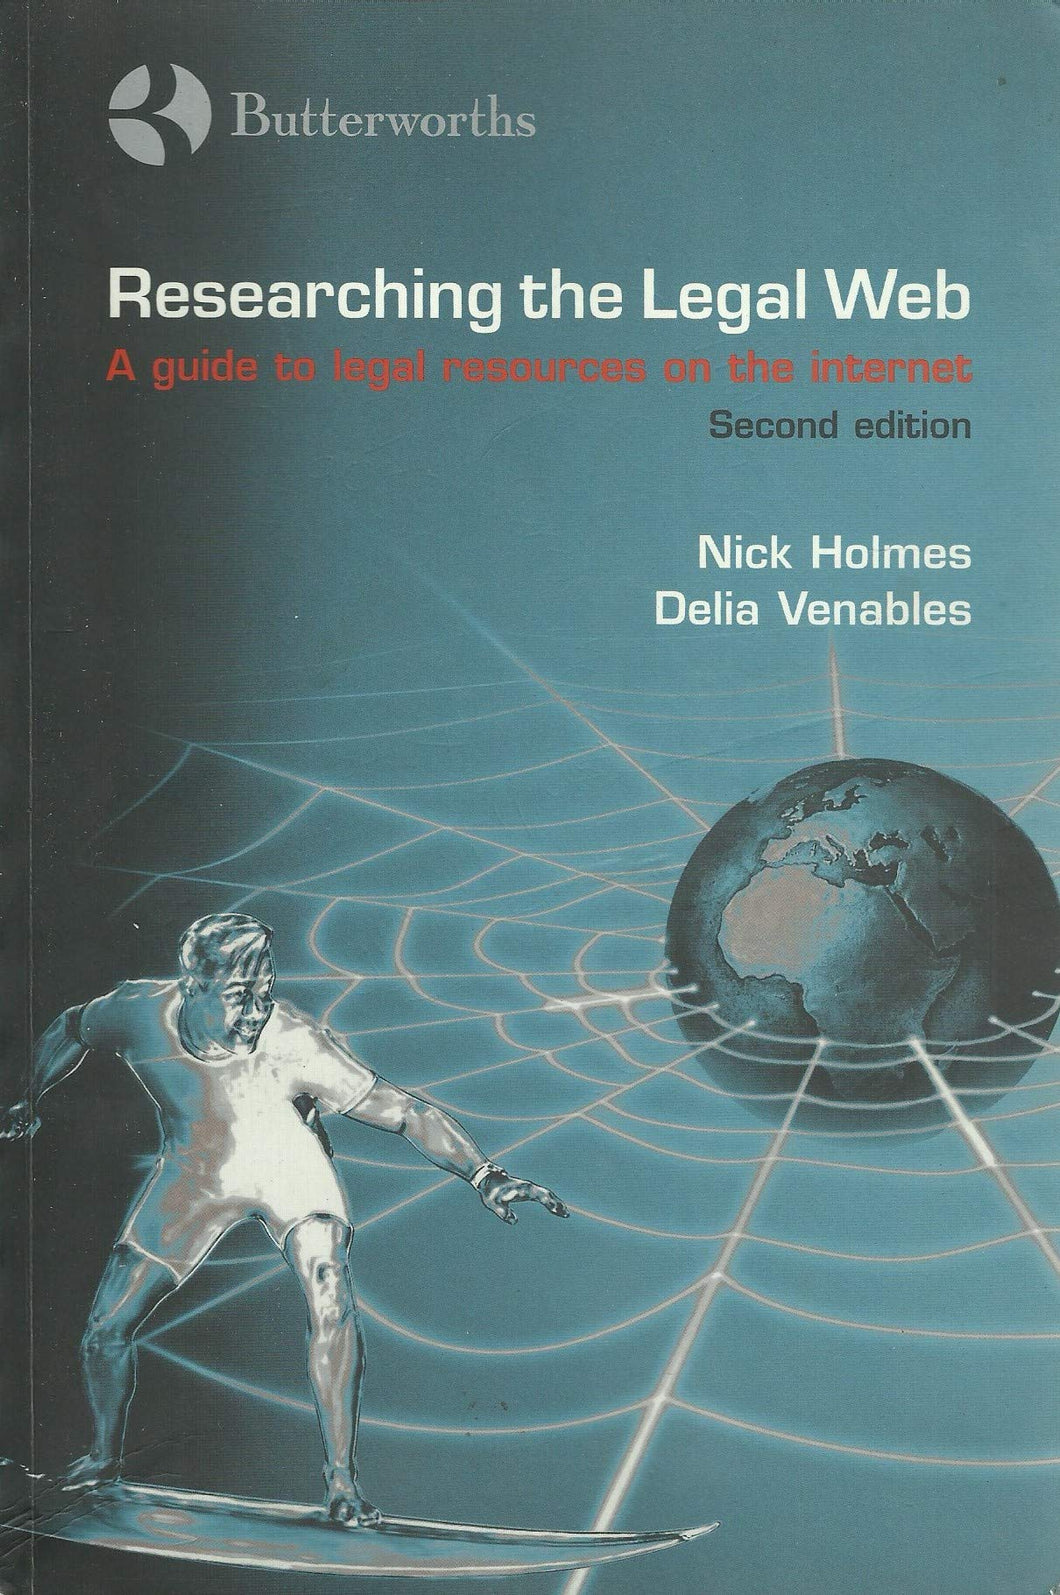 Researching the Legal Web